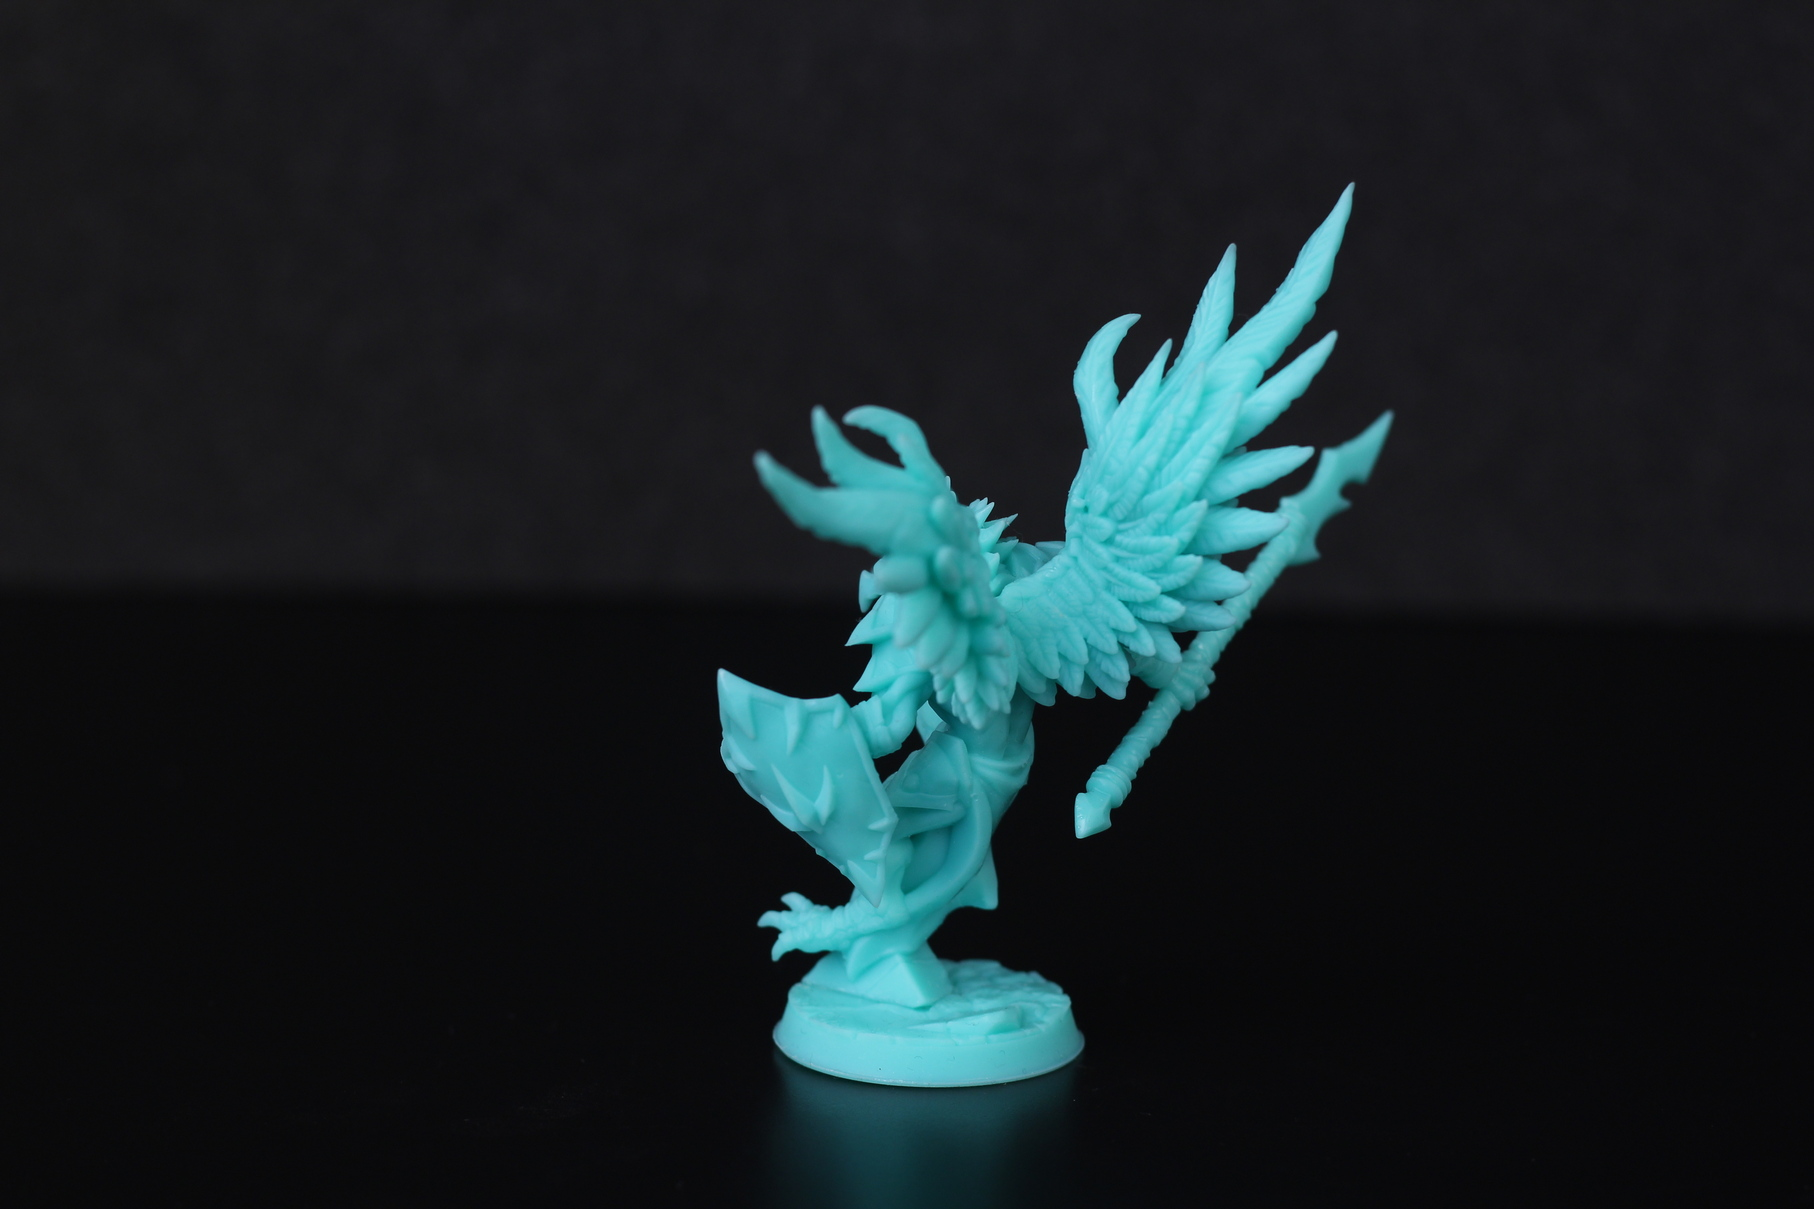 High Gryphkin printed on Anycubic Photon Mono X 4 | Anycubic Photon Mono X Review - Large Format Resin 3D Printer